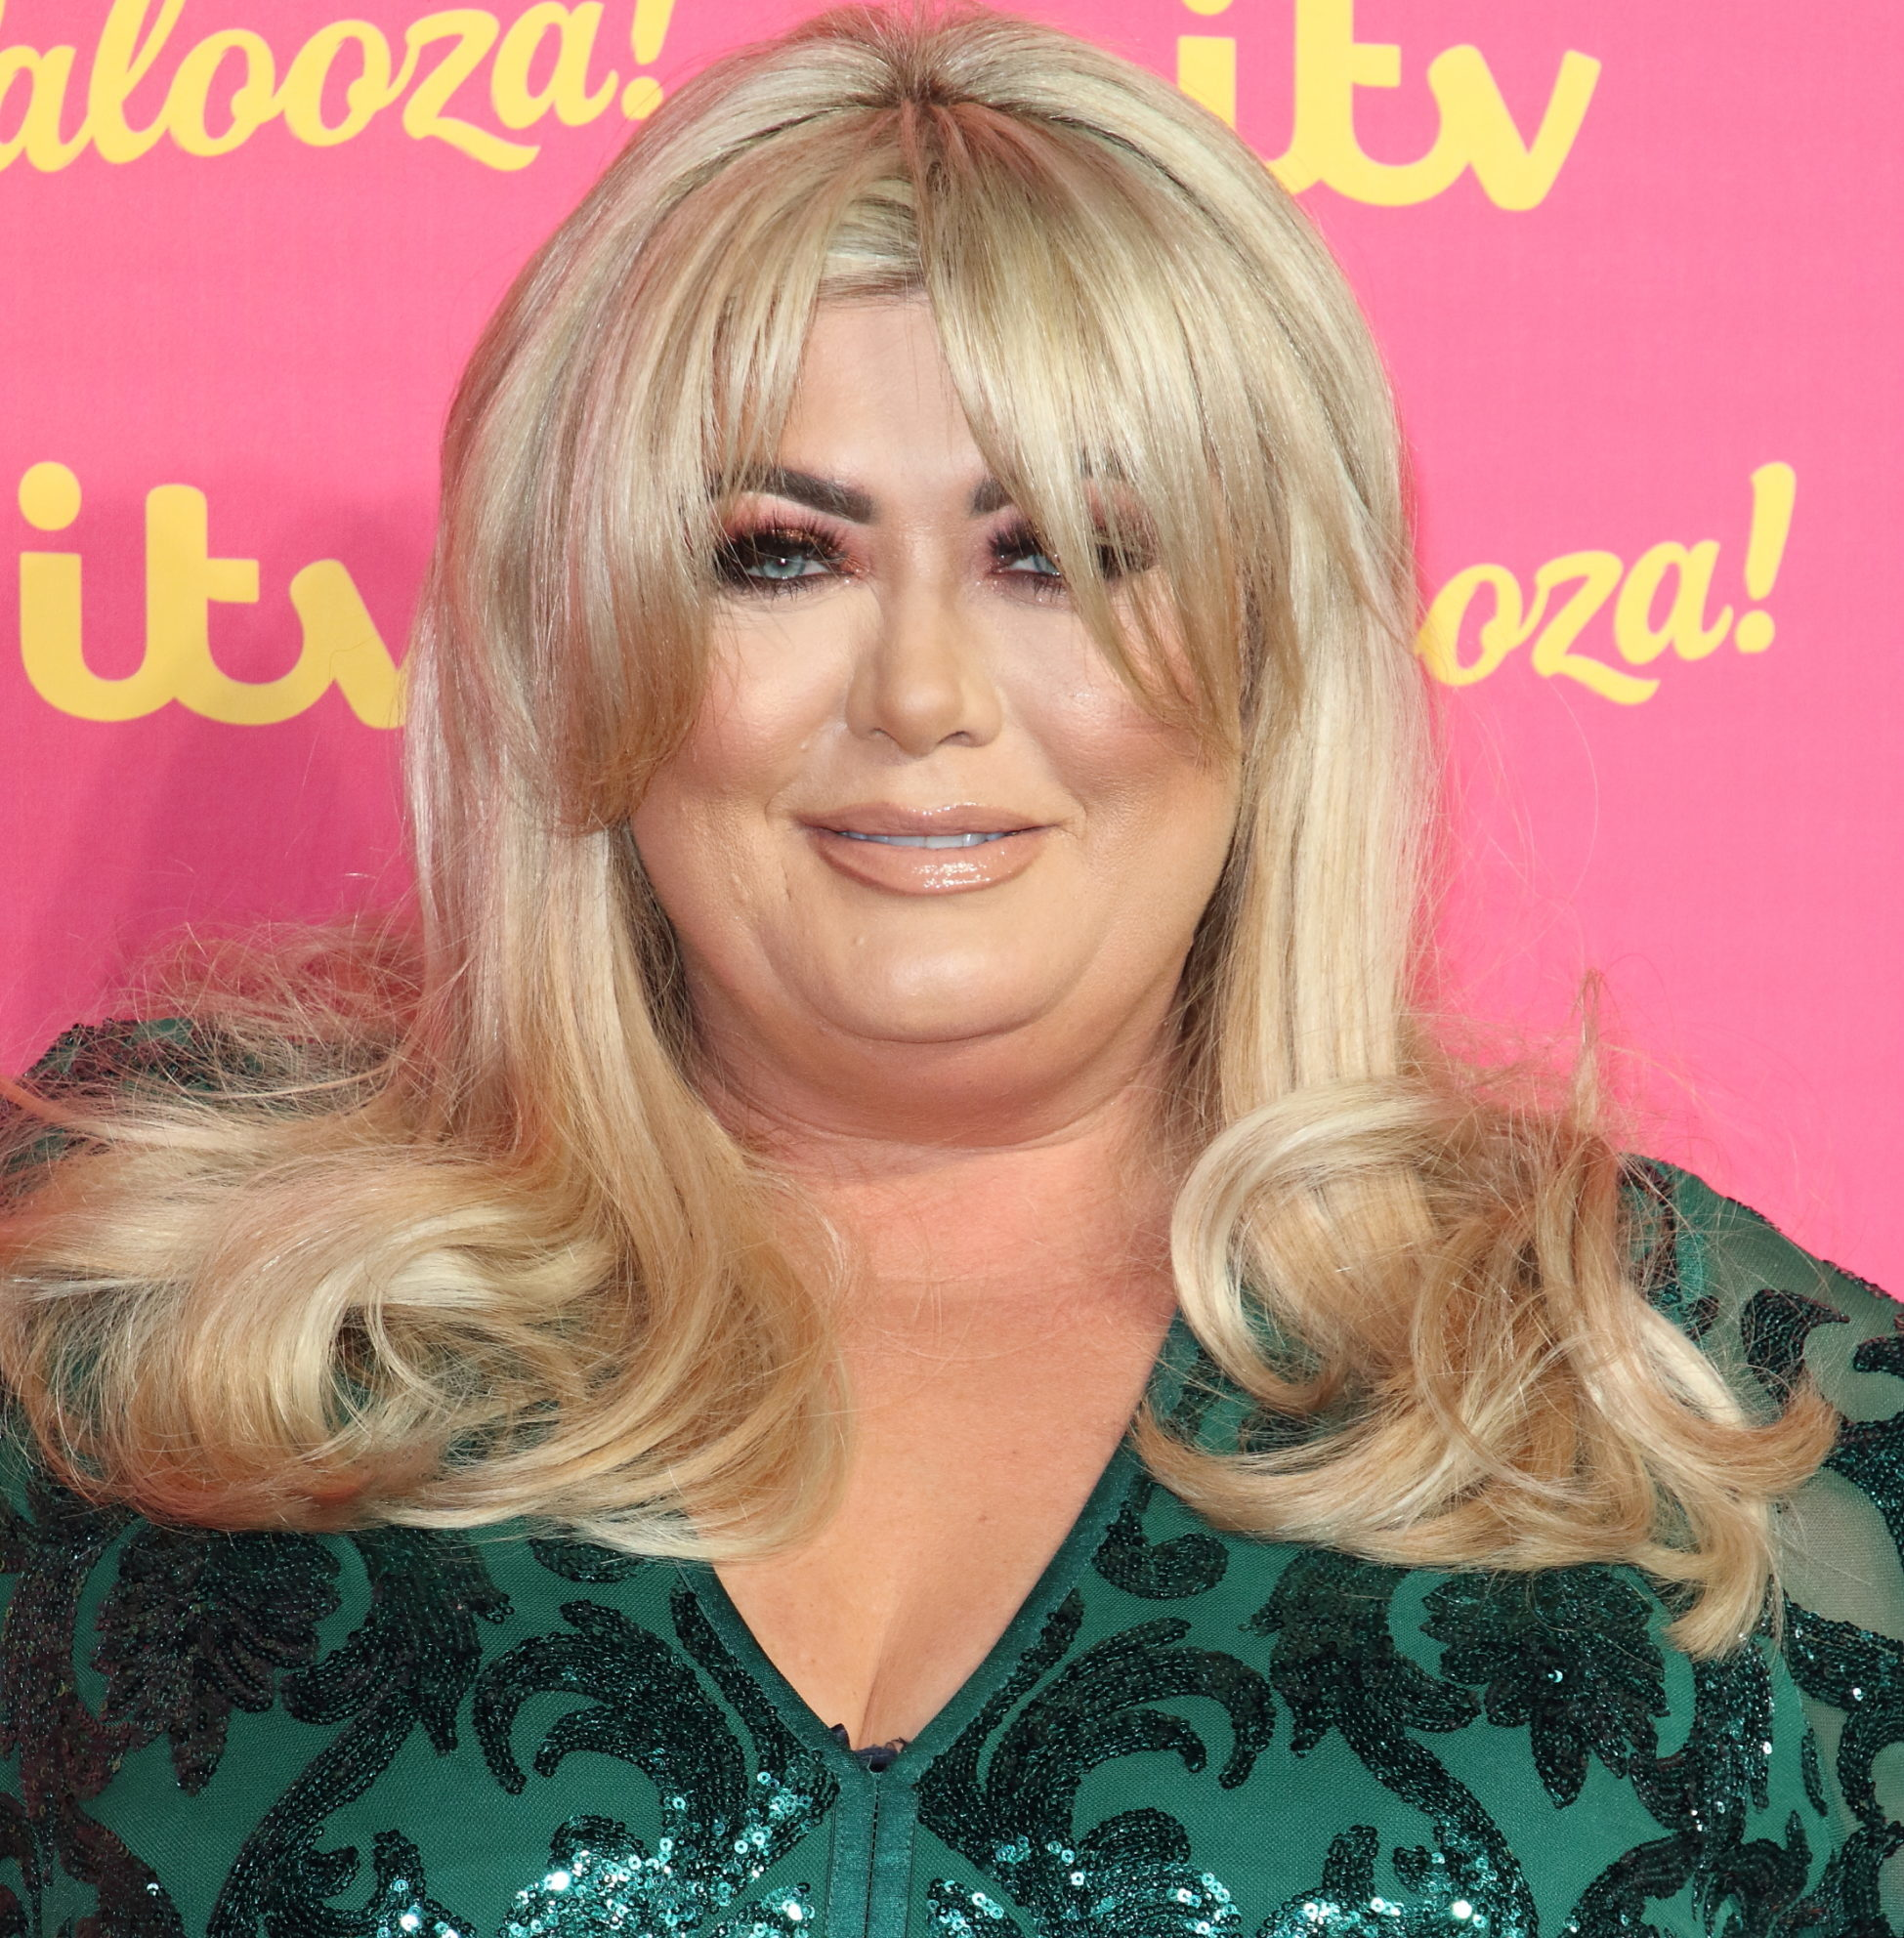 Gemma Collins was first to call the Spain quarantine